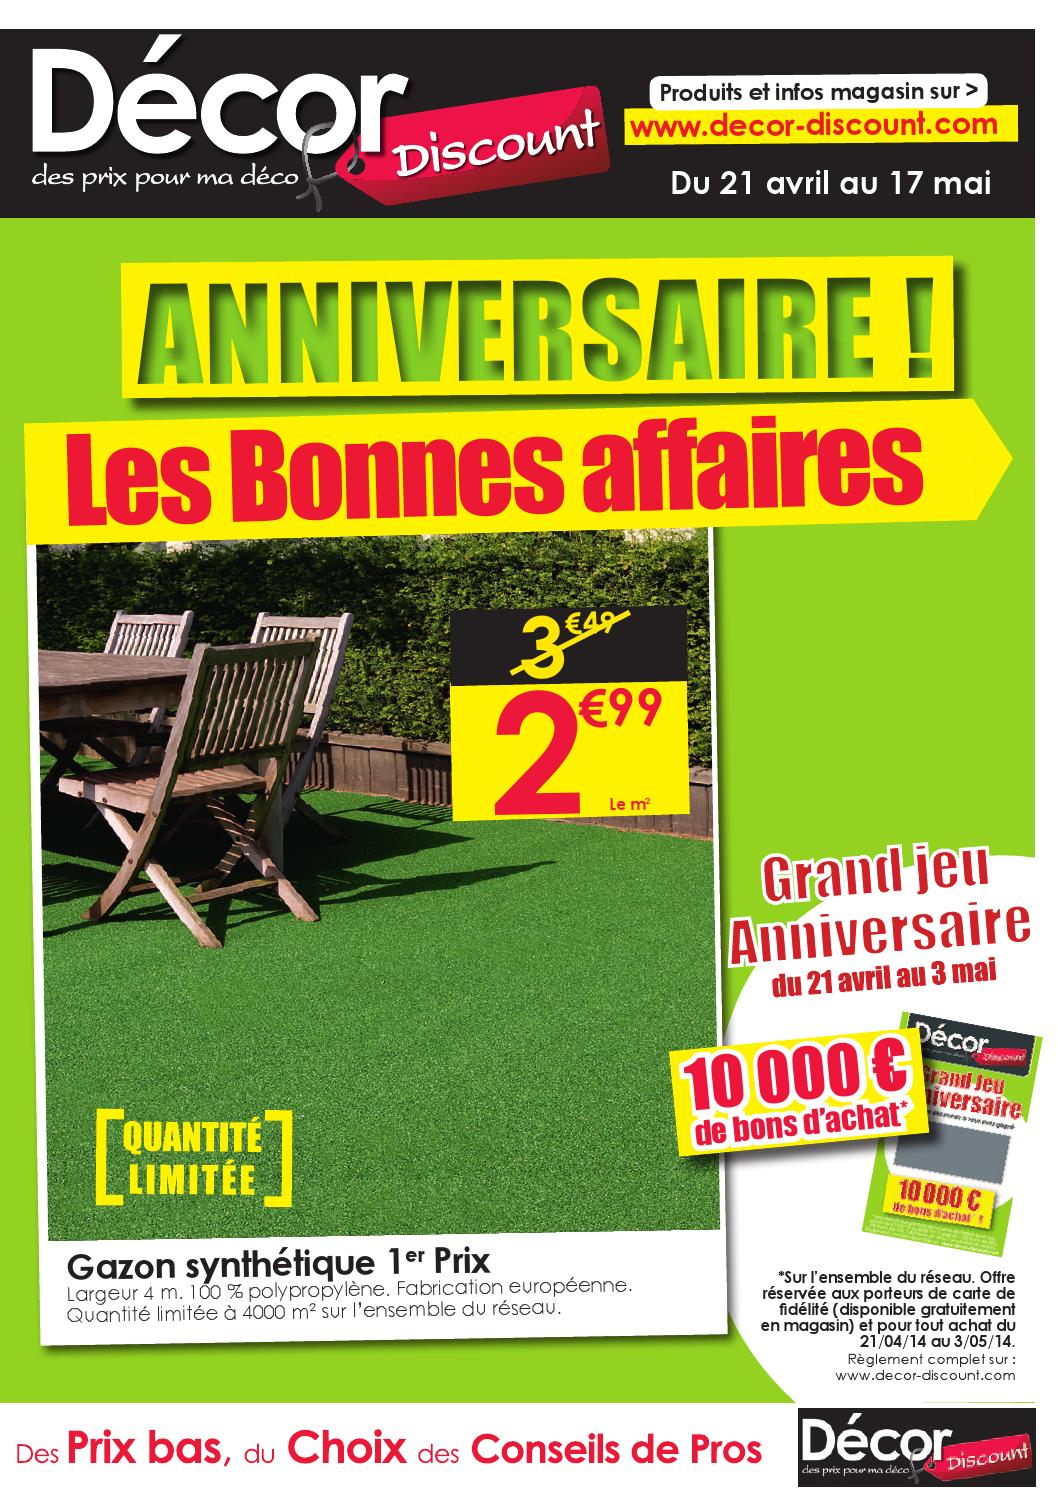 Deko Discount 24 Prospectus Anniversaire By Décor Discount Issuu